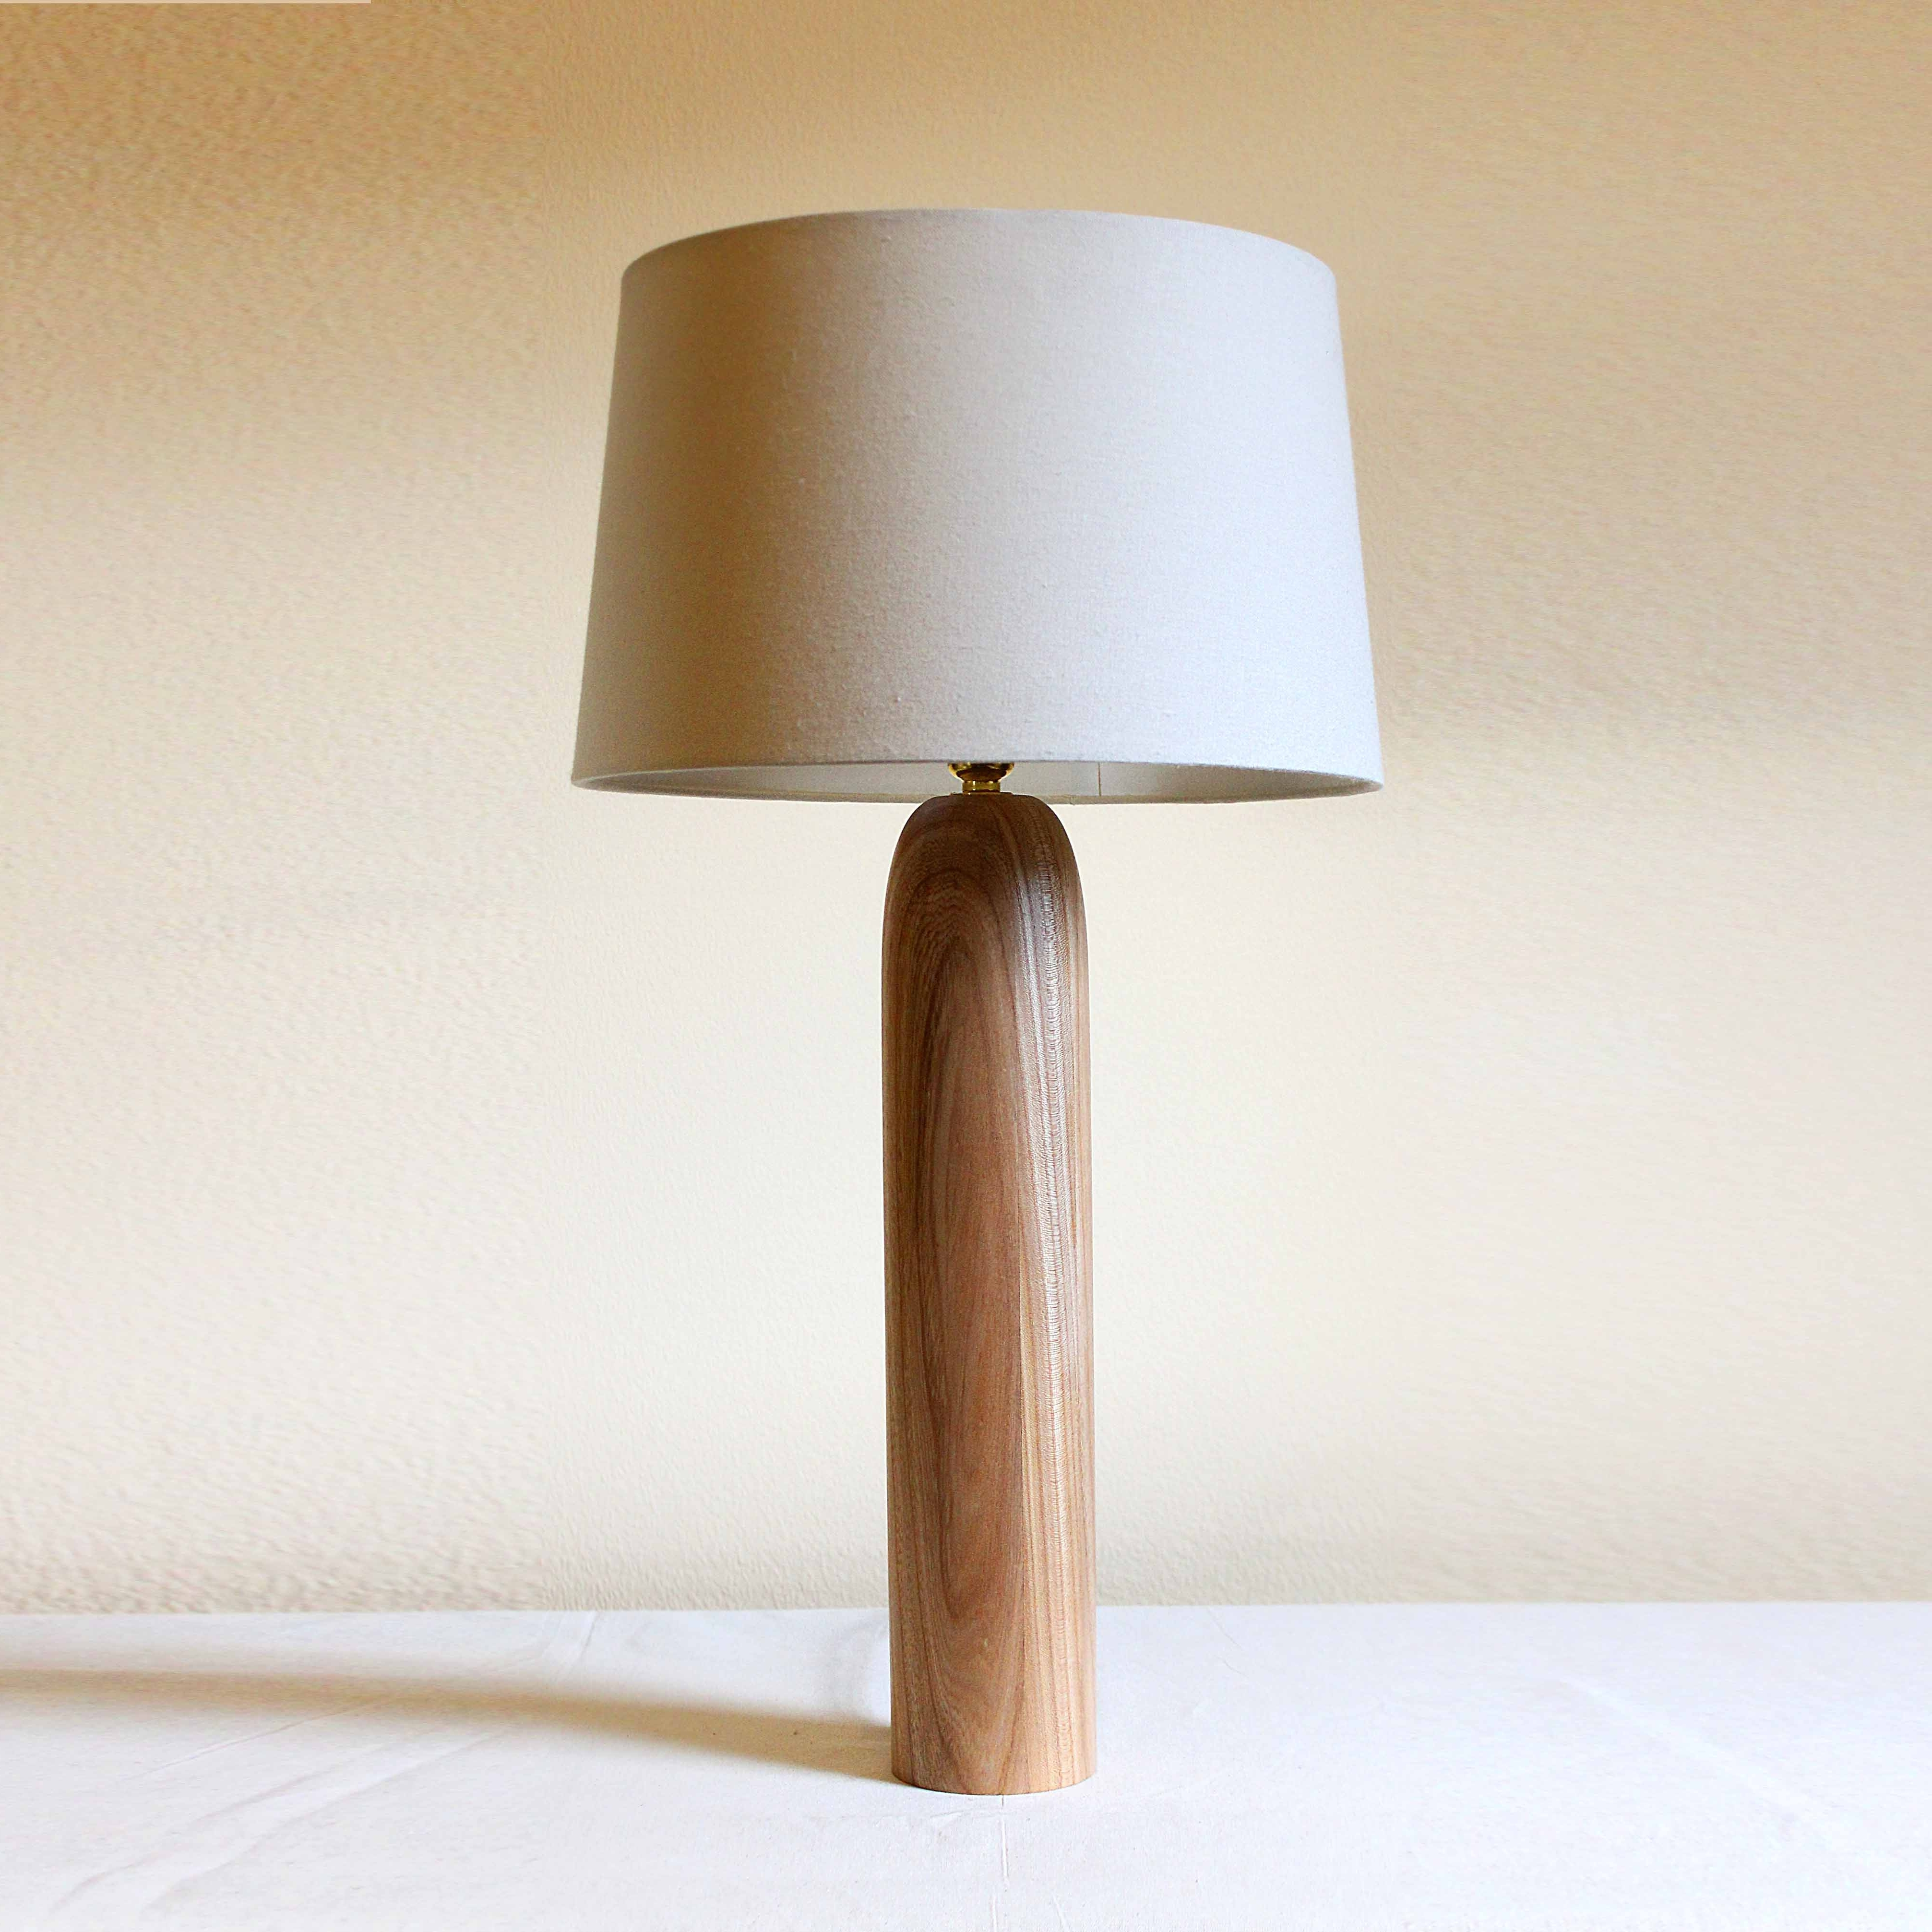 Trendy Top 68 Skookum Possini Ceiling Lights Battery Operated Table Lamps Pertaining To Battery Operated Living Room Table Lamps (View 18 of 20)